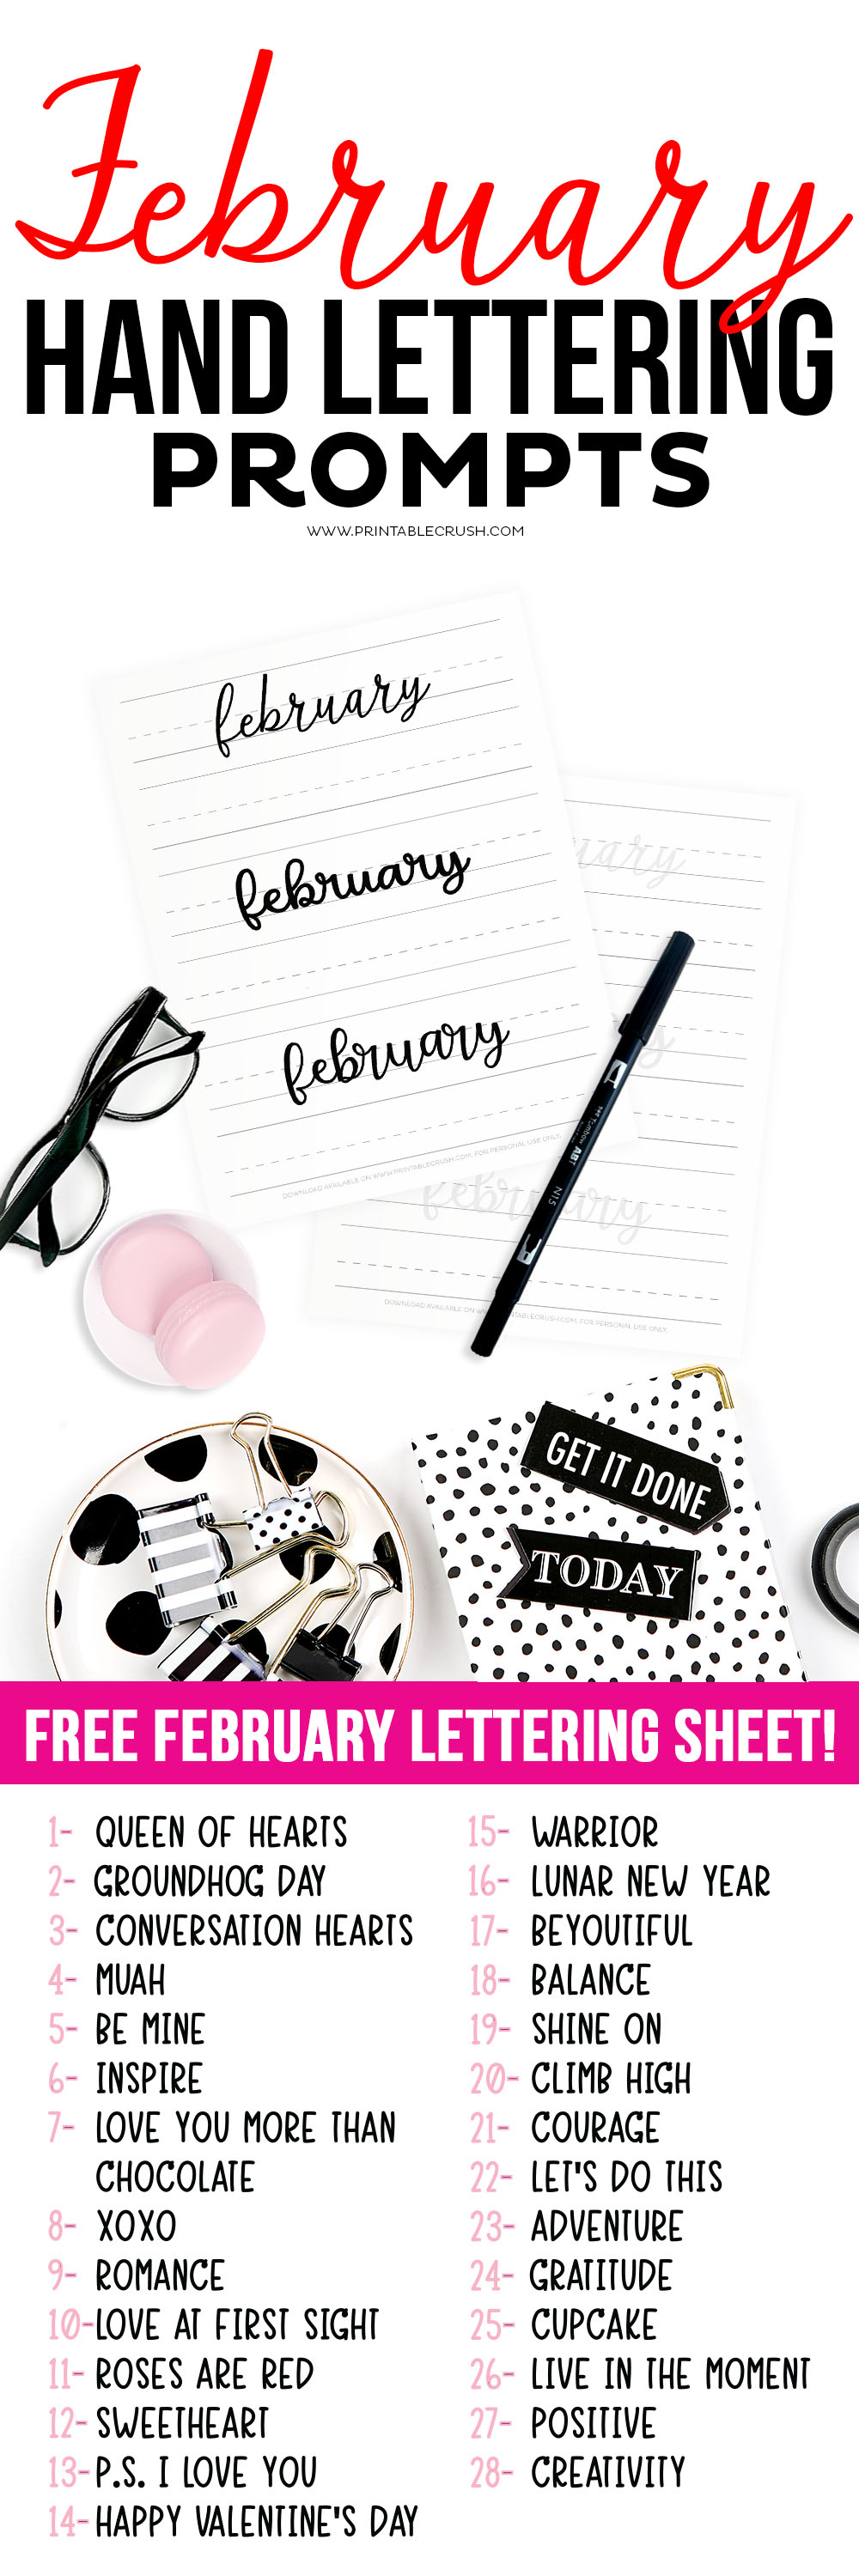 Get 28 FEBRUARY Hand Lettering Prompts plus a FREE practice sheet in this blog series to improve your hand lettering skills. Plus, learn how you can get 28 days of February lettering worksheets! via @printablecrush